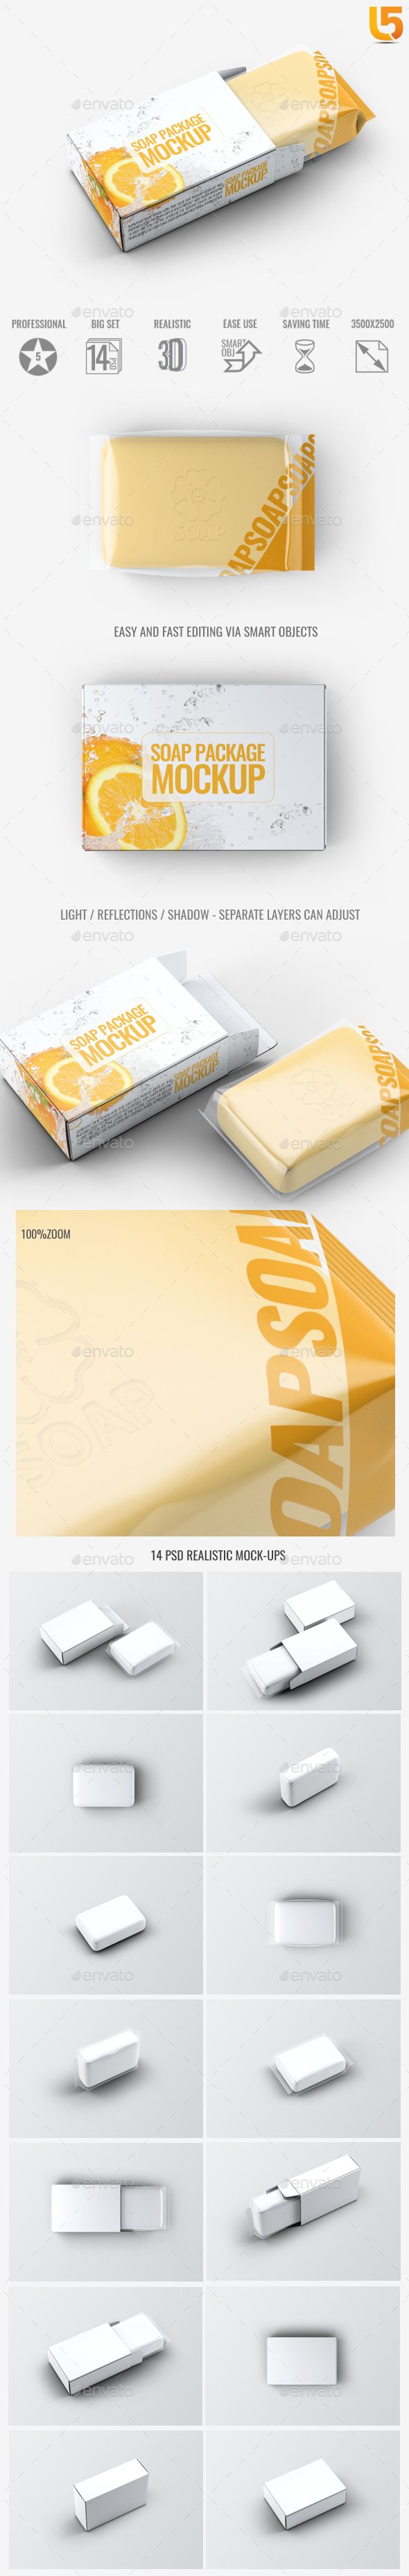 Soap Bar Package MockUp — Photoshop PSD #health #package • Download ➝ https://graphicriver.net/item/soap-bar-package-mockup/18889156?ref=pxcr